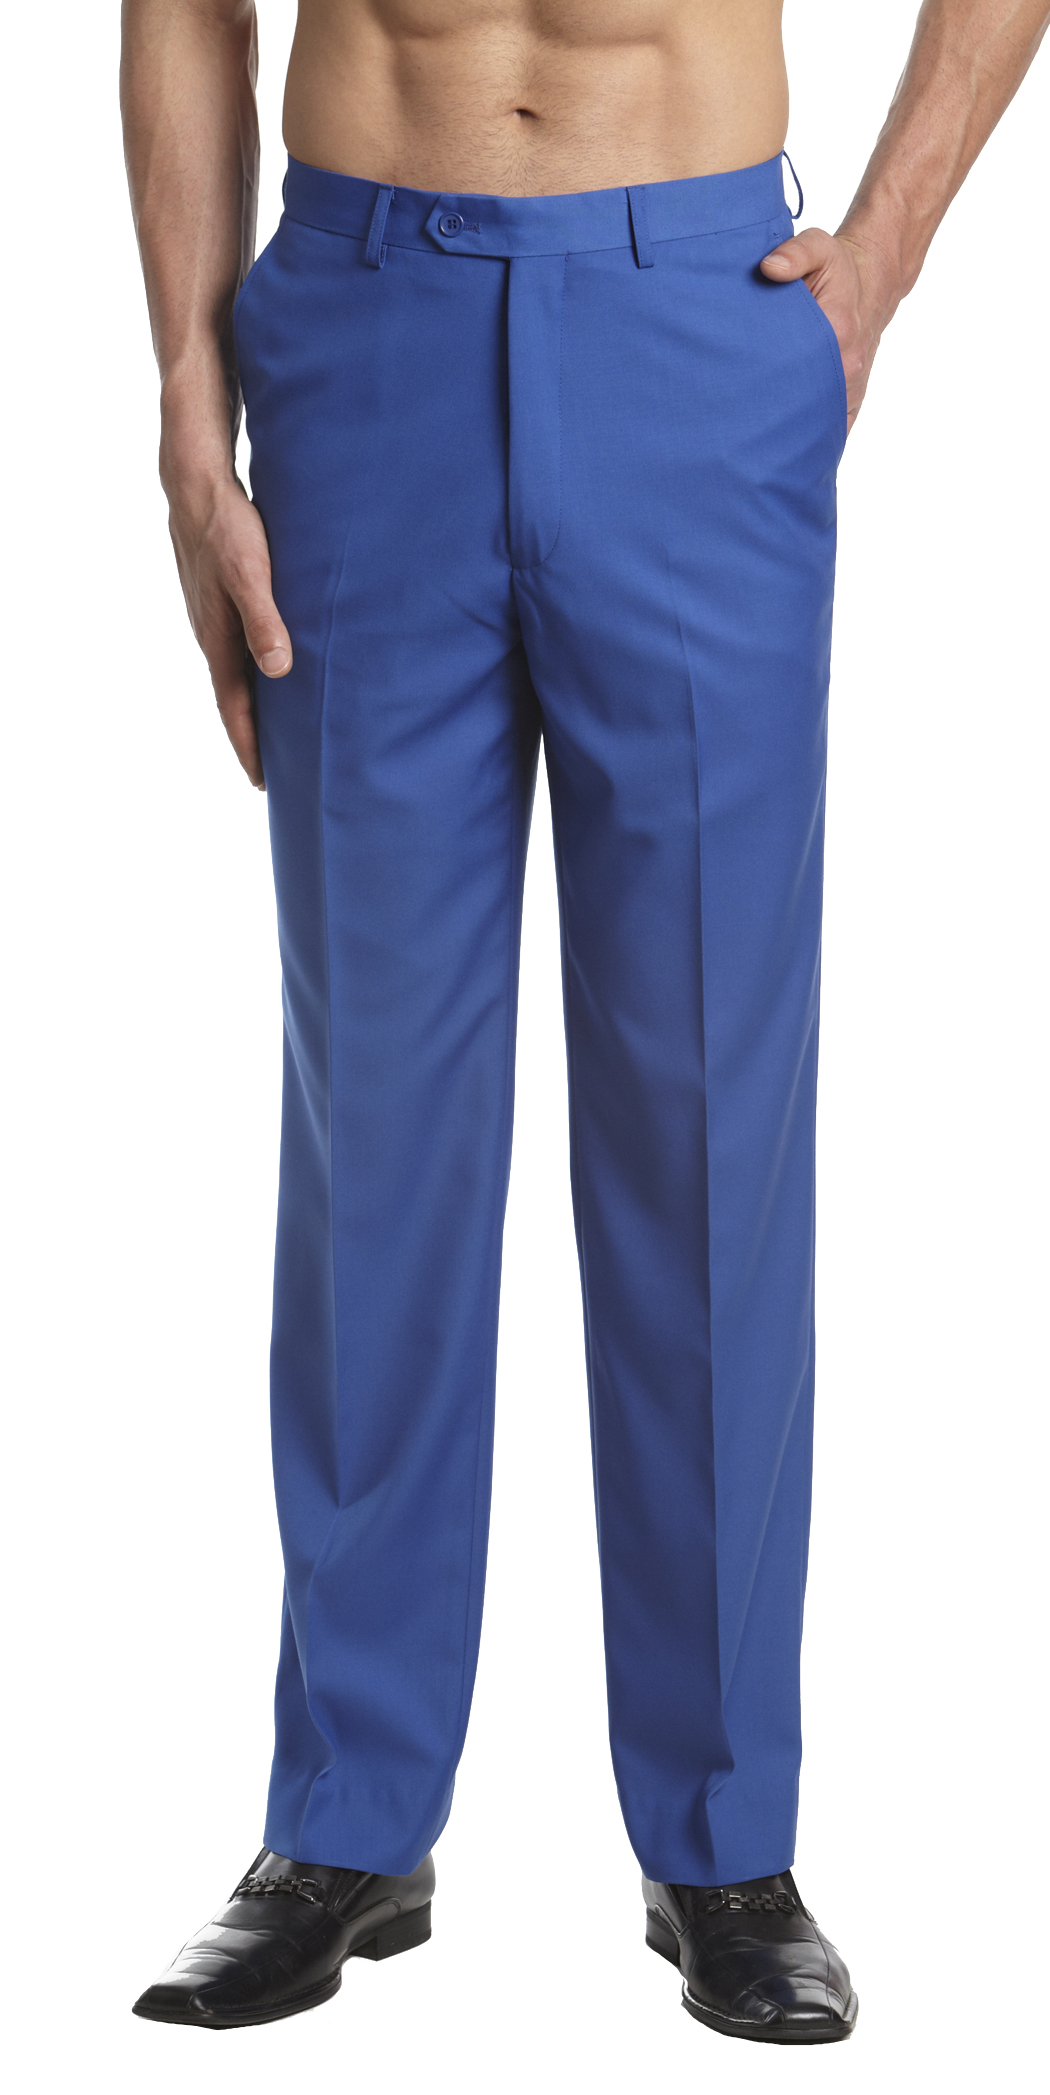 Shop eBay for great deals on Blue Pants for Men. You'll find new or used products in Blue Pants for Men on eBay. Free shipping on selected items.